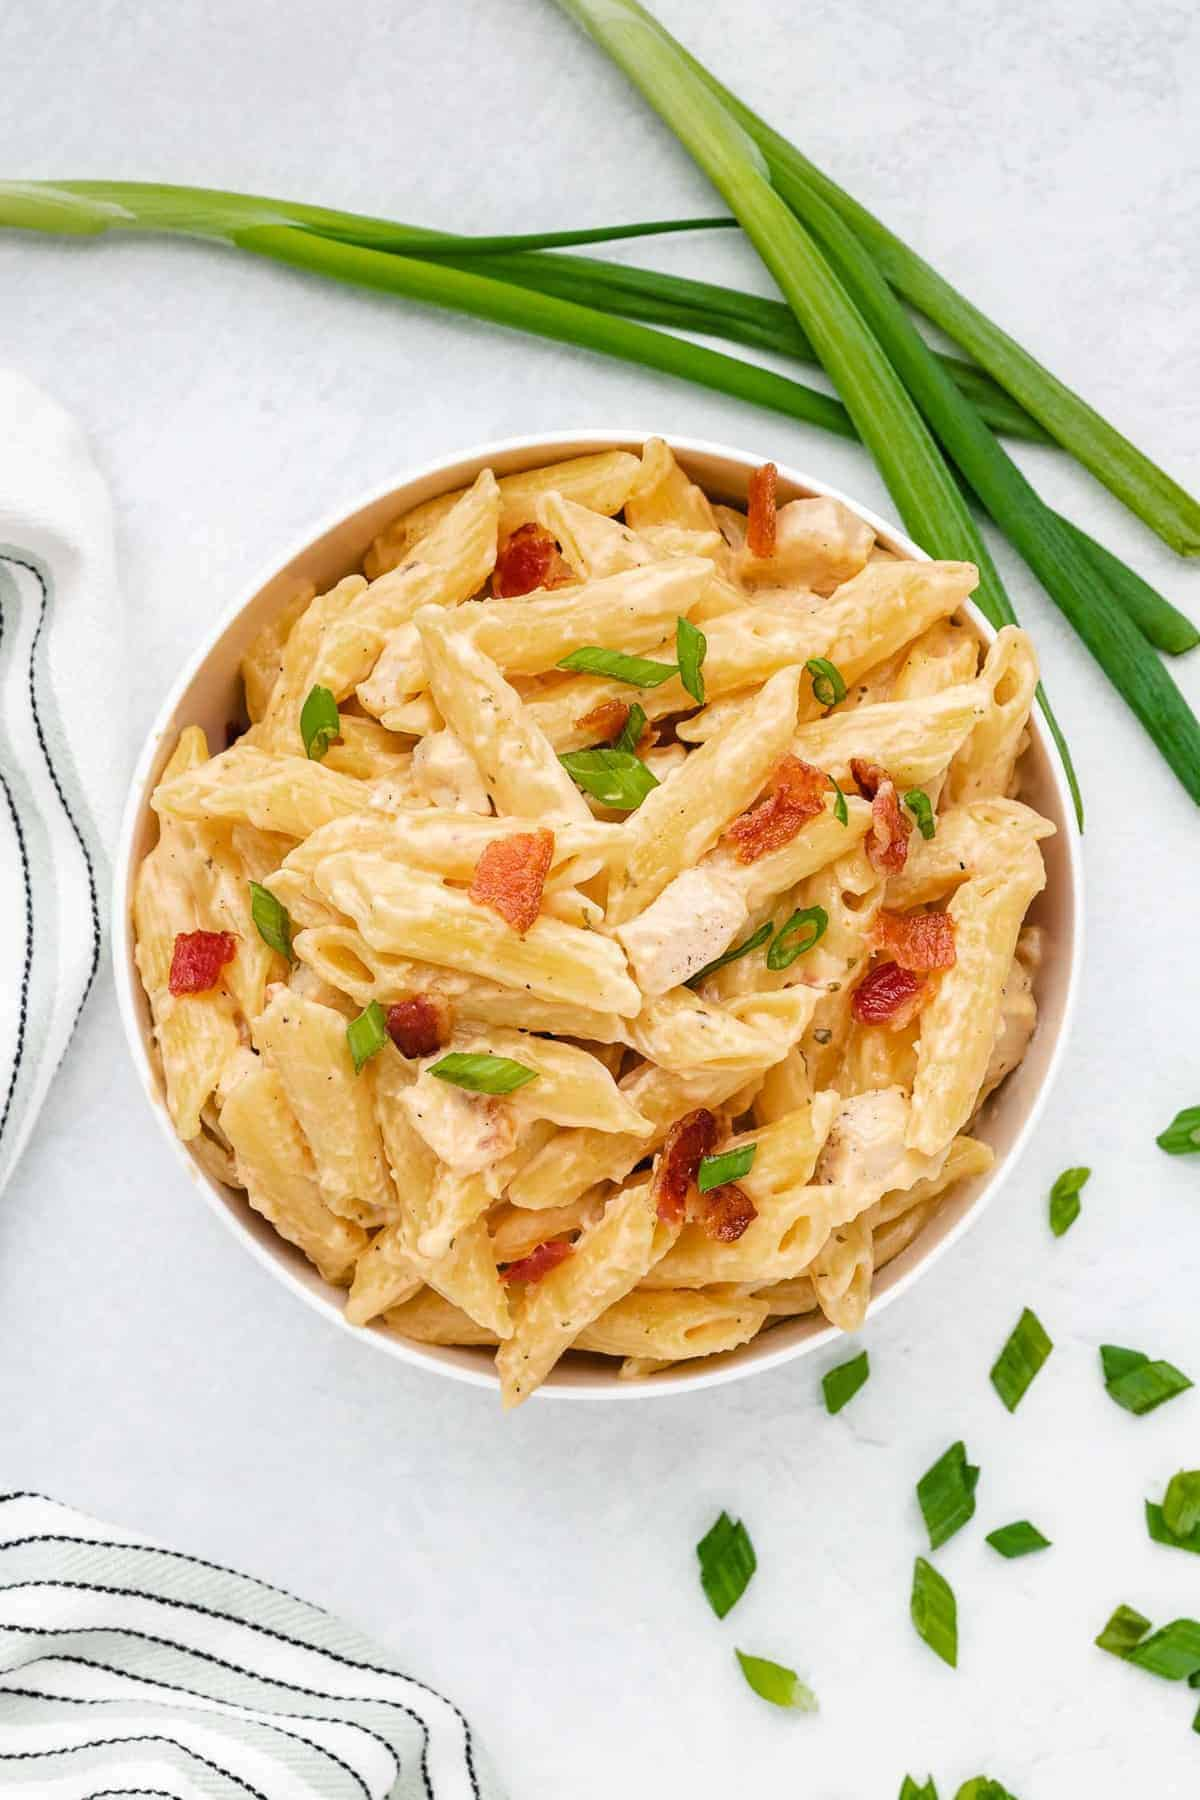 Creamy chicken pasta in a bowl with green onions and bacon.